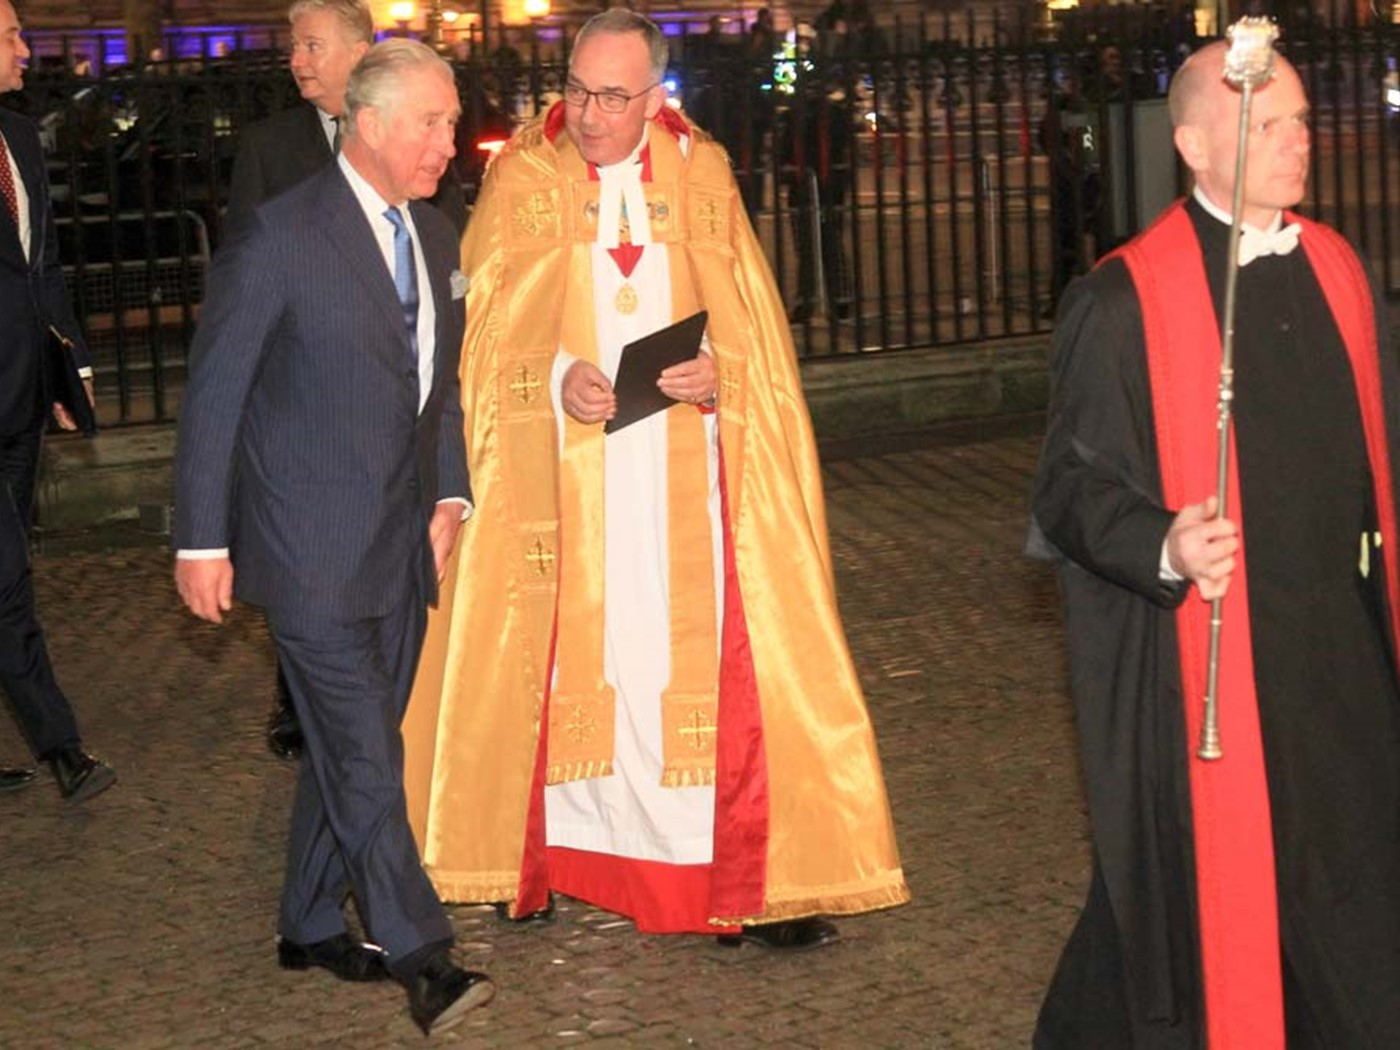 The Prince of Wales arrives at the service